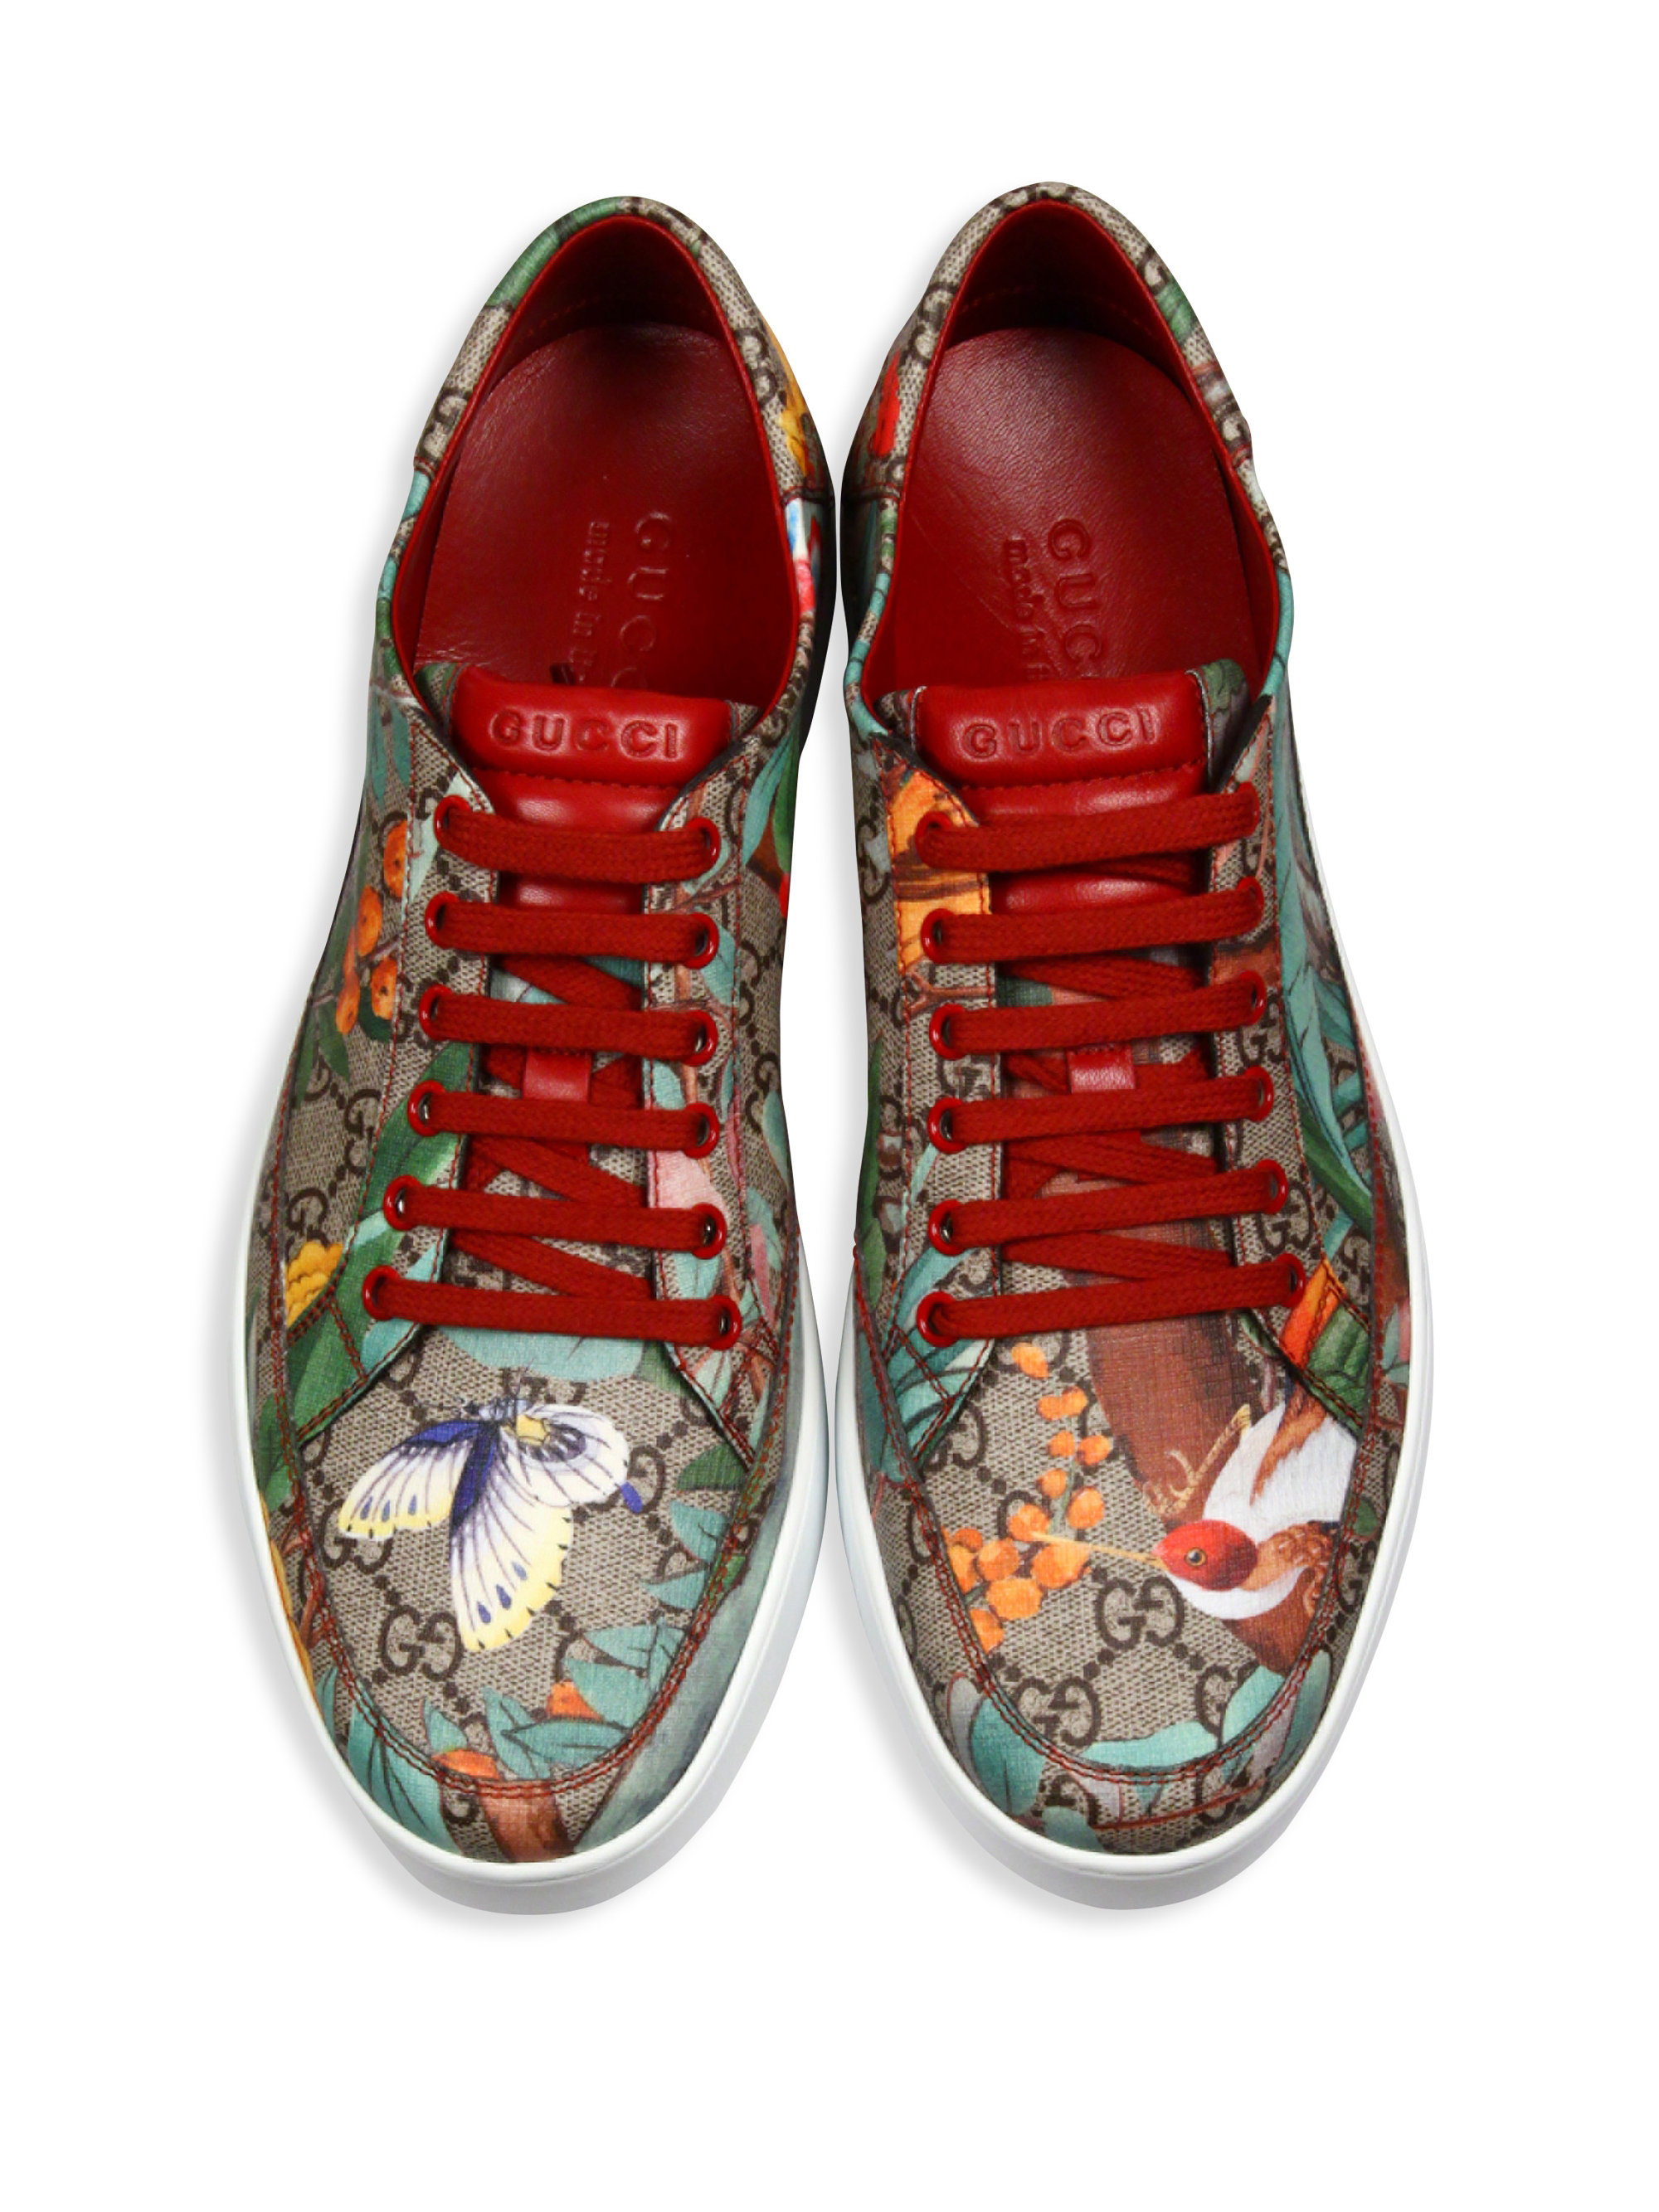 d39f37c5f Gucci Gg Supreme Tian Low-top Sneakers for Men - Lyst